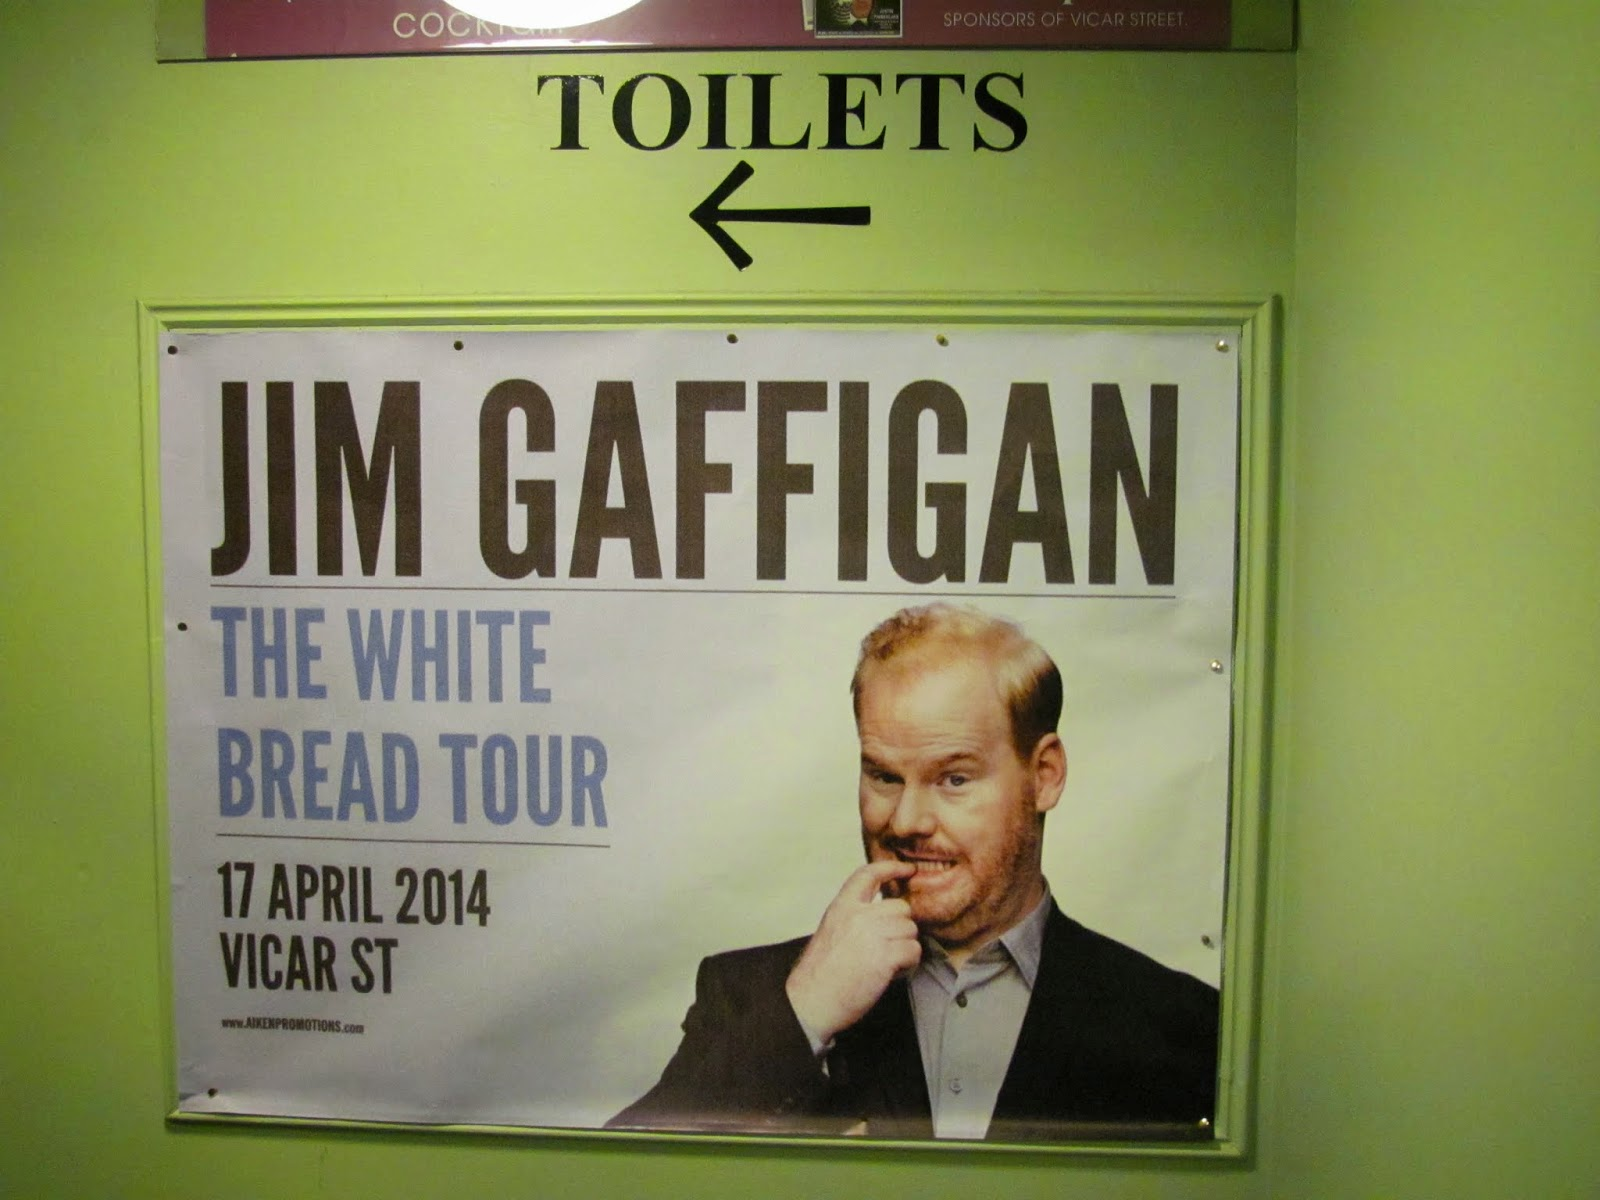 Jim Gaffigan in the Toilets sign at Vicar Street Theatre Dublin